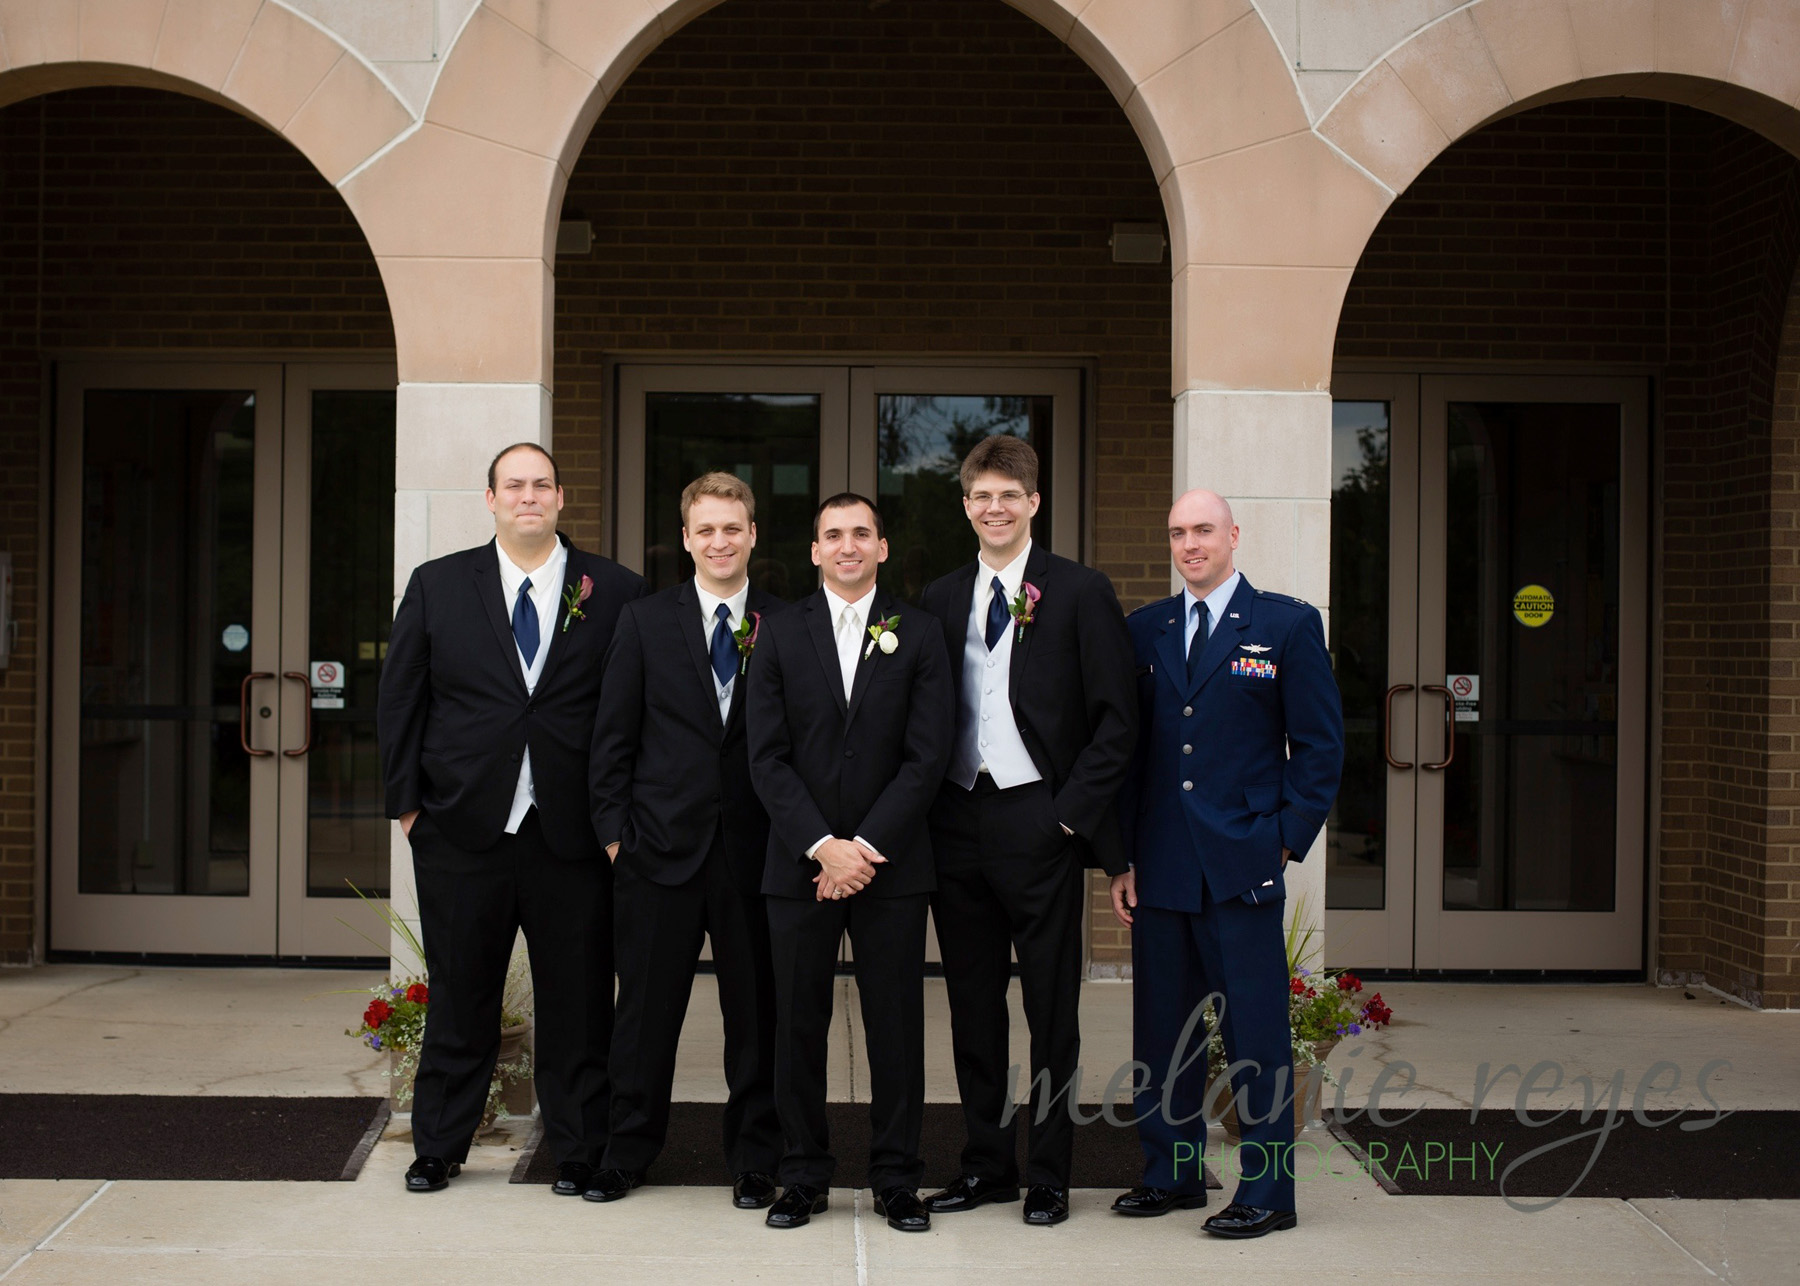 ann_arbor_wedding_photographer__007